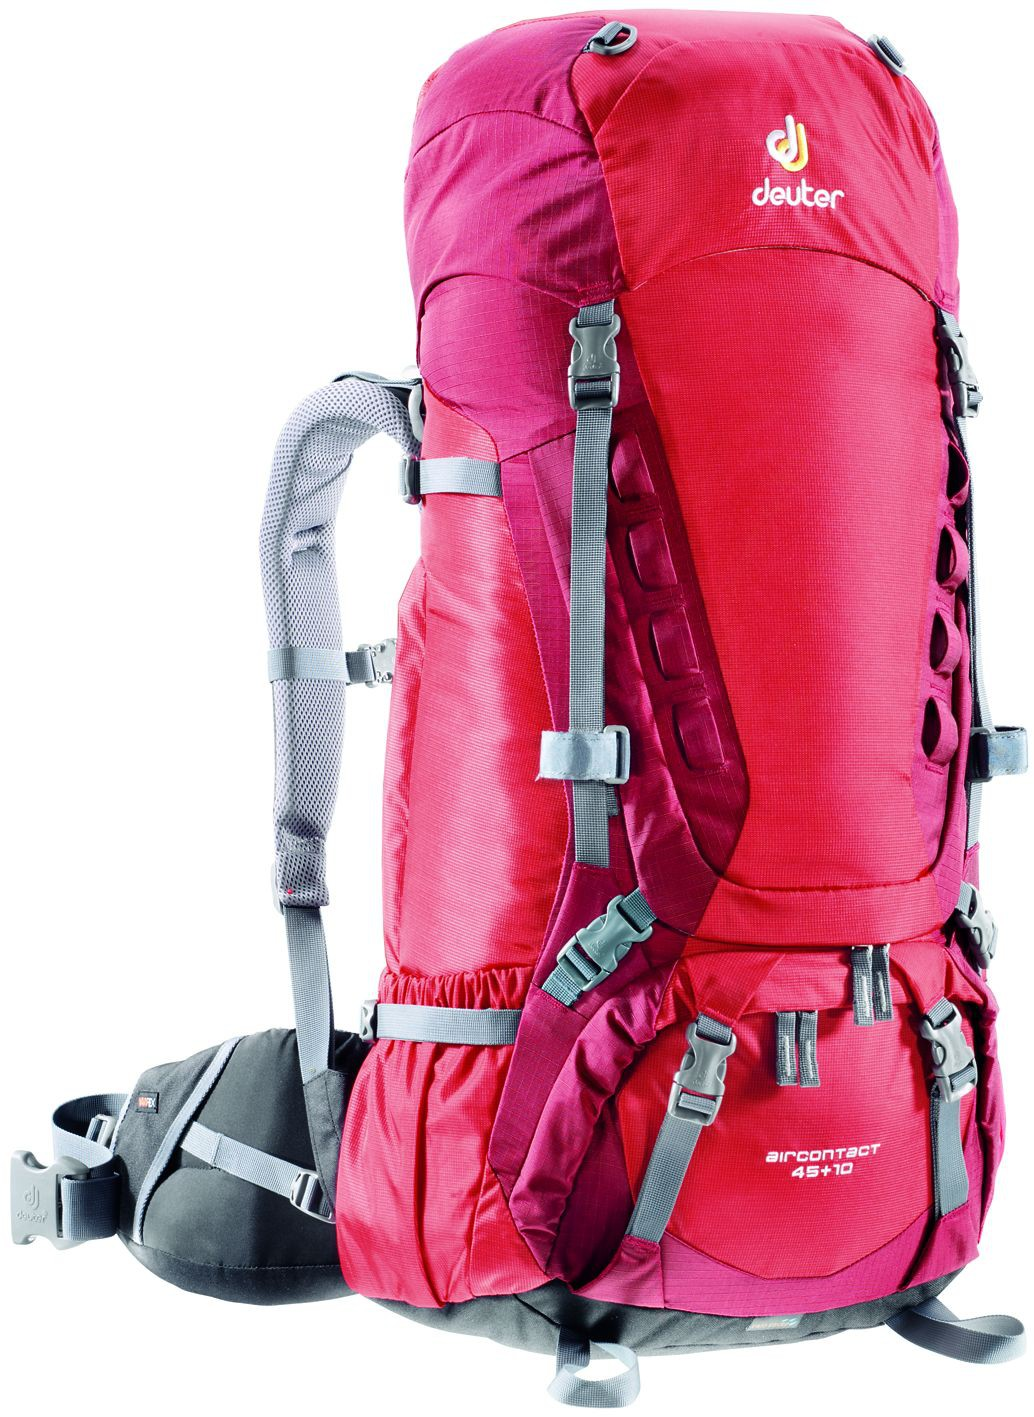 Фото рюкзак deuter aircontact 45+10 fire/cranberry